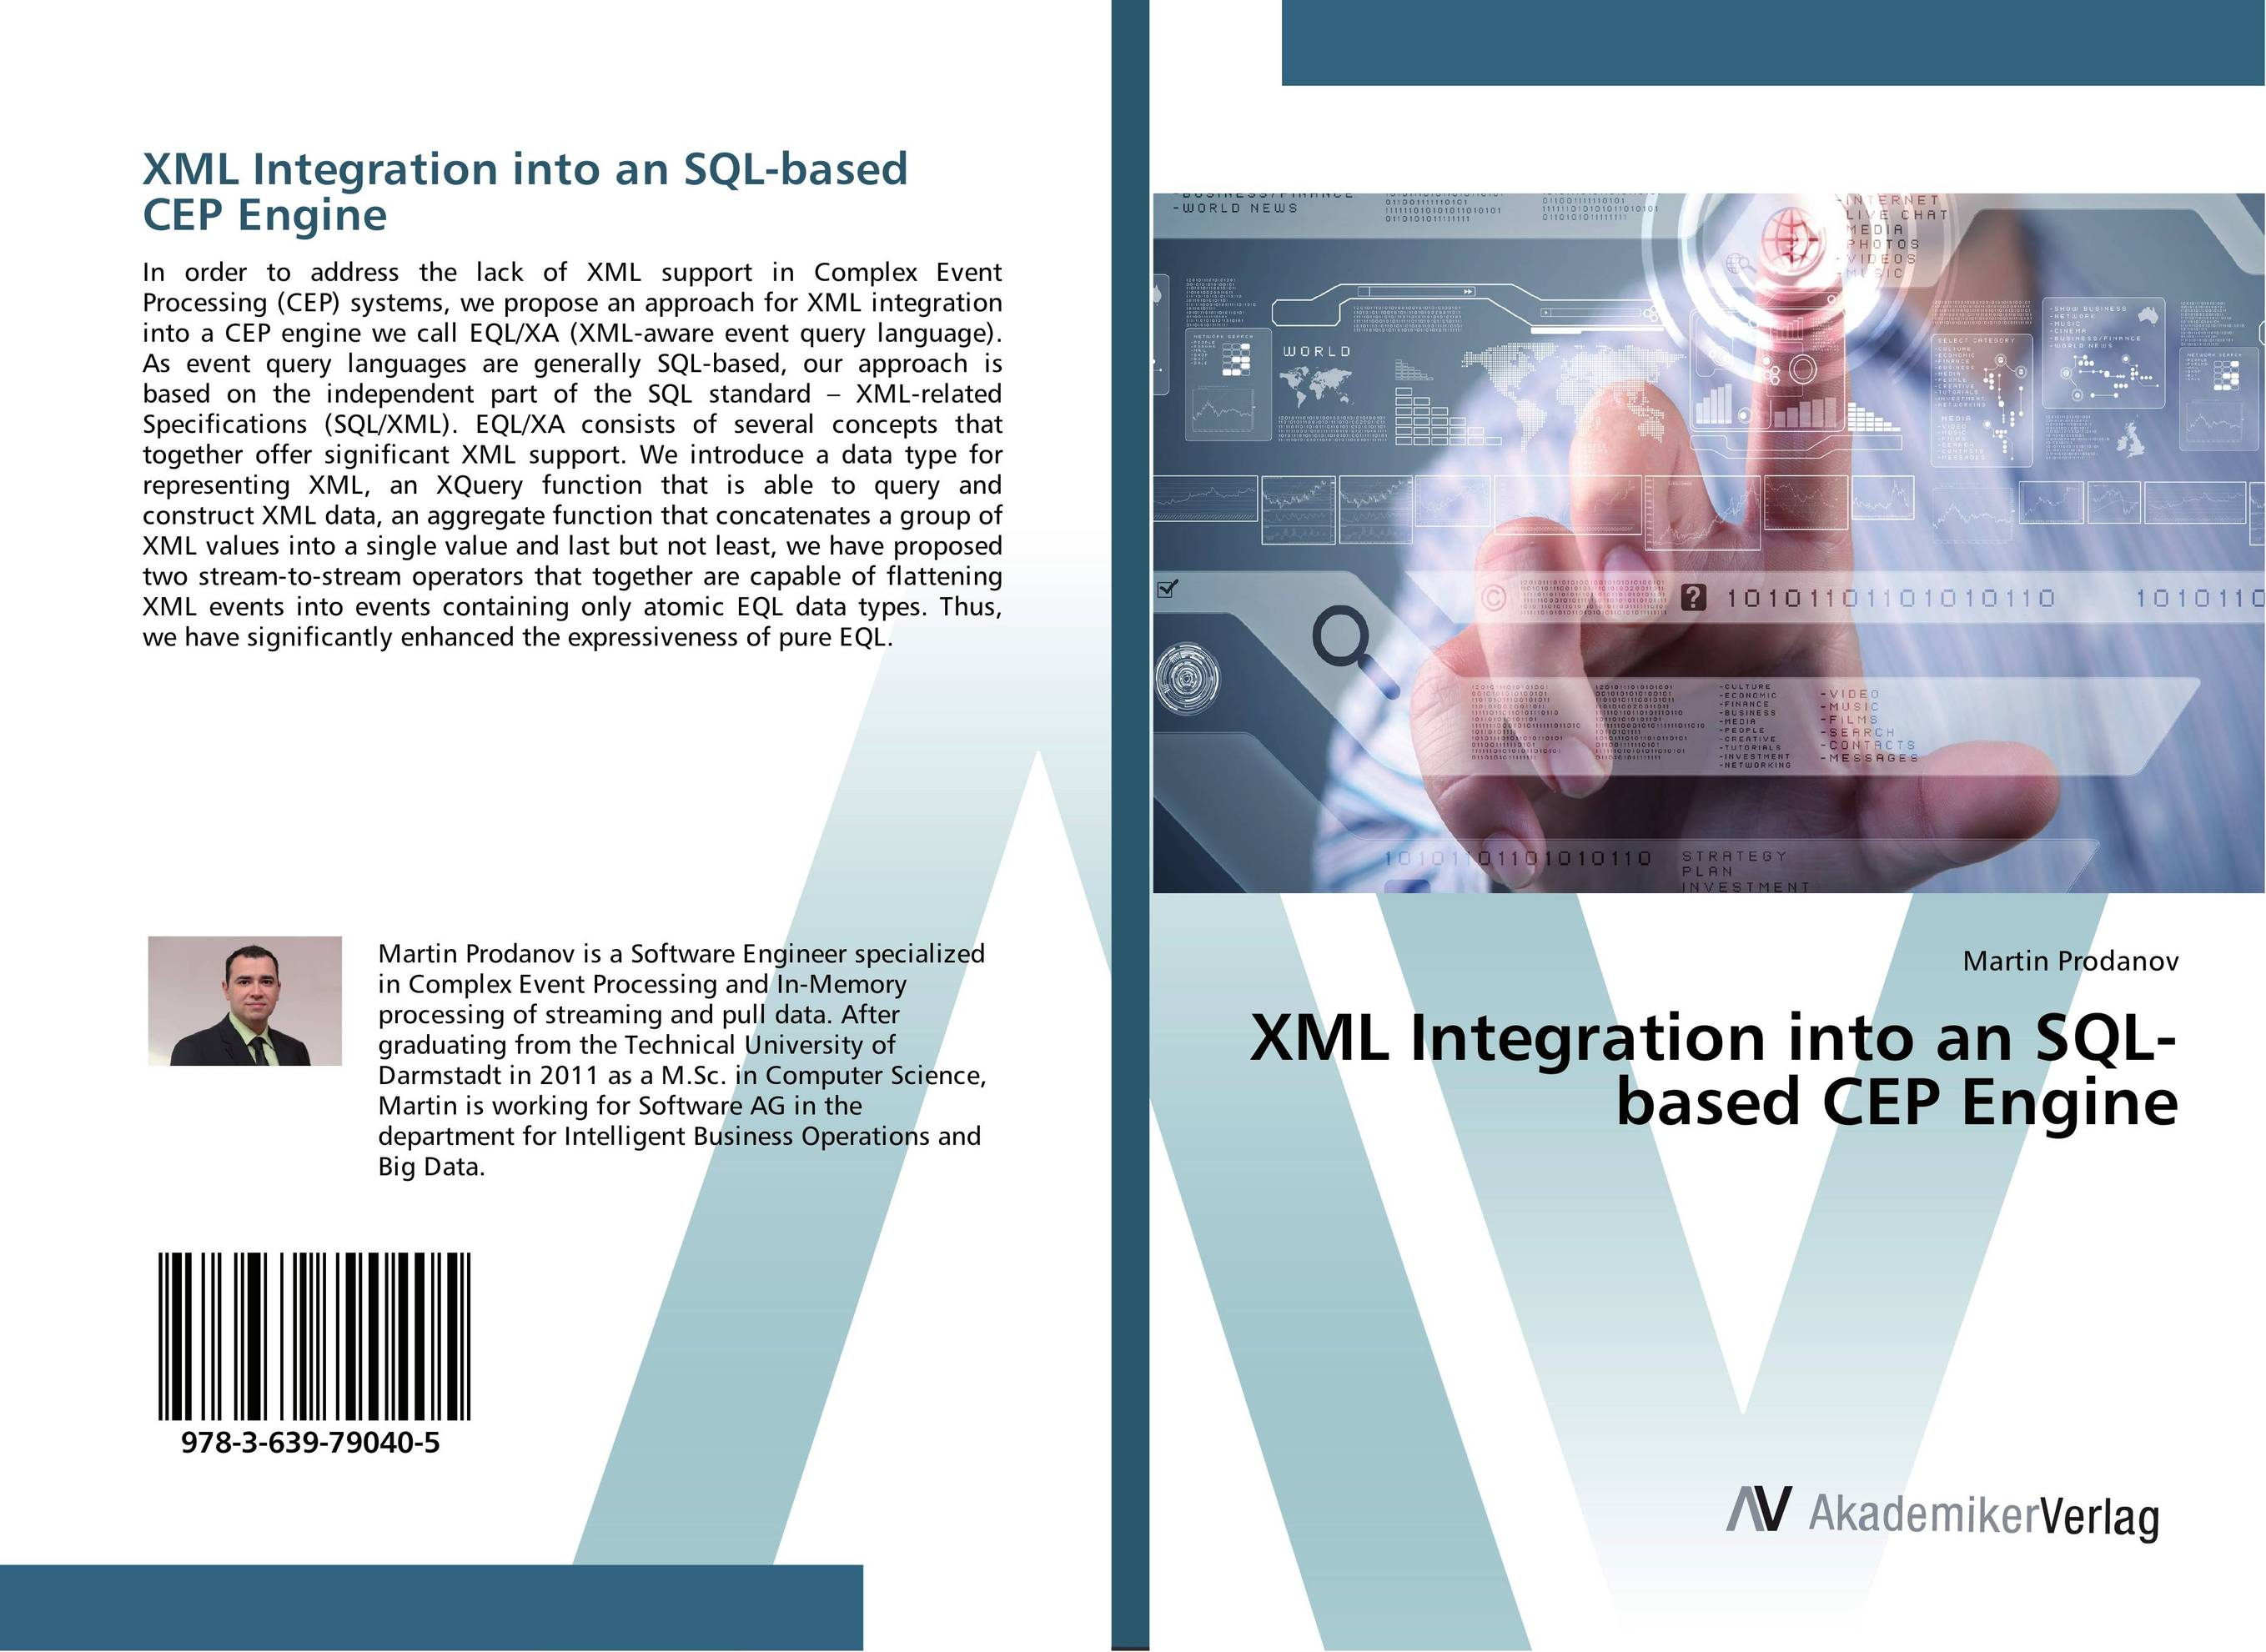 XML Integration into an SQL-based CEP Engine sitemap 391 xml